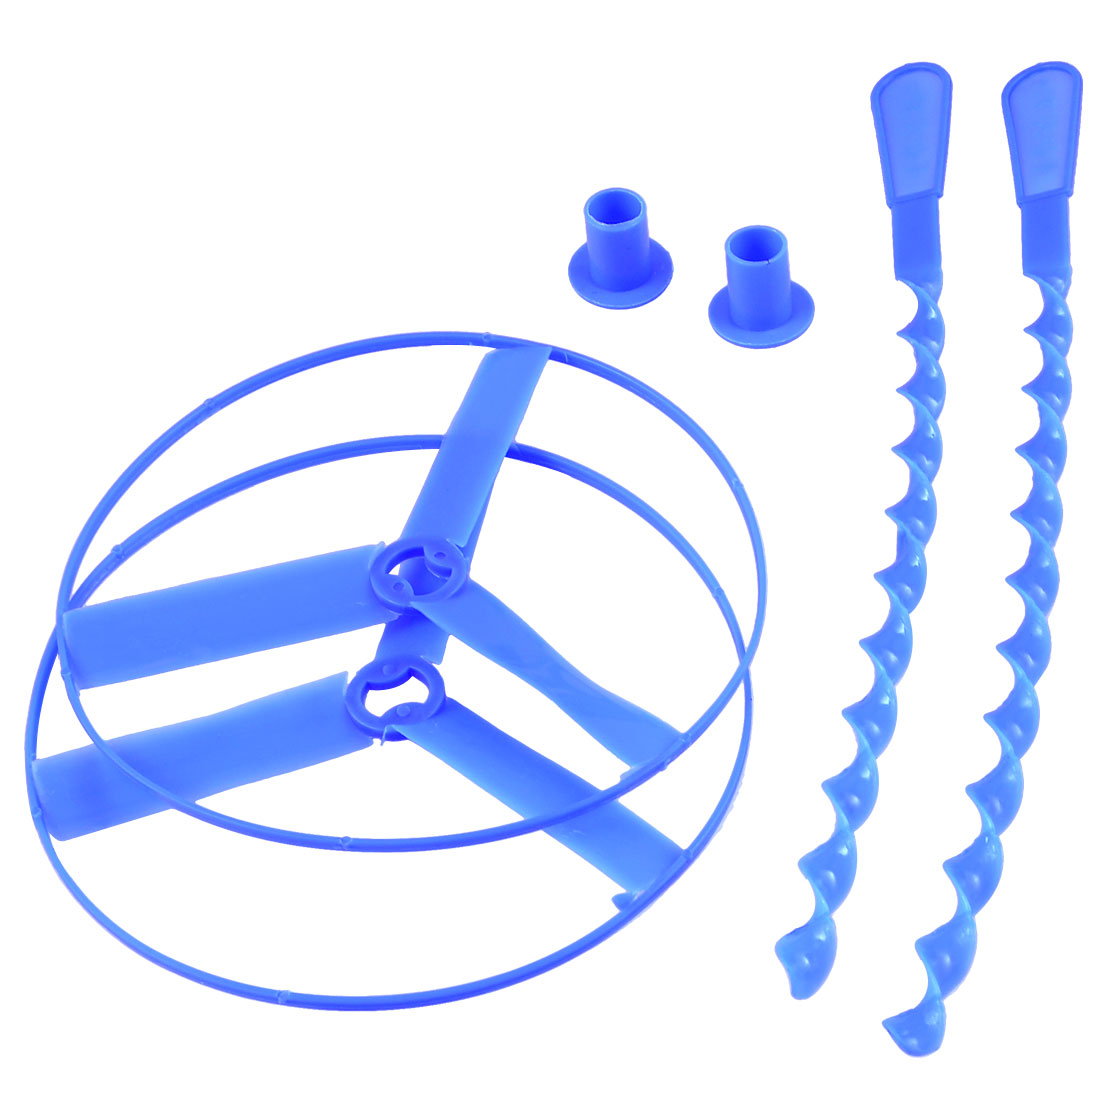 2 Pcs Hand Spinning Shooter Flying Saucer Disc Play Toy Blue for Kids